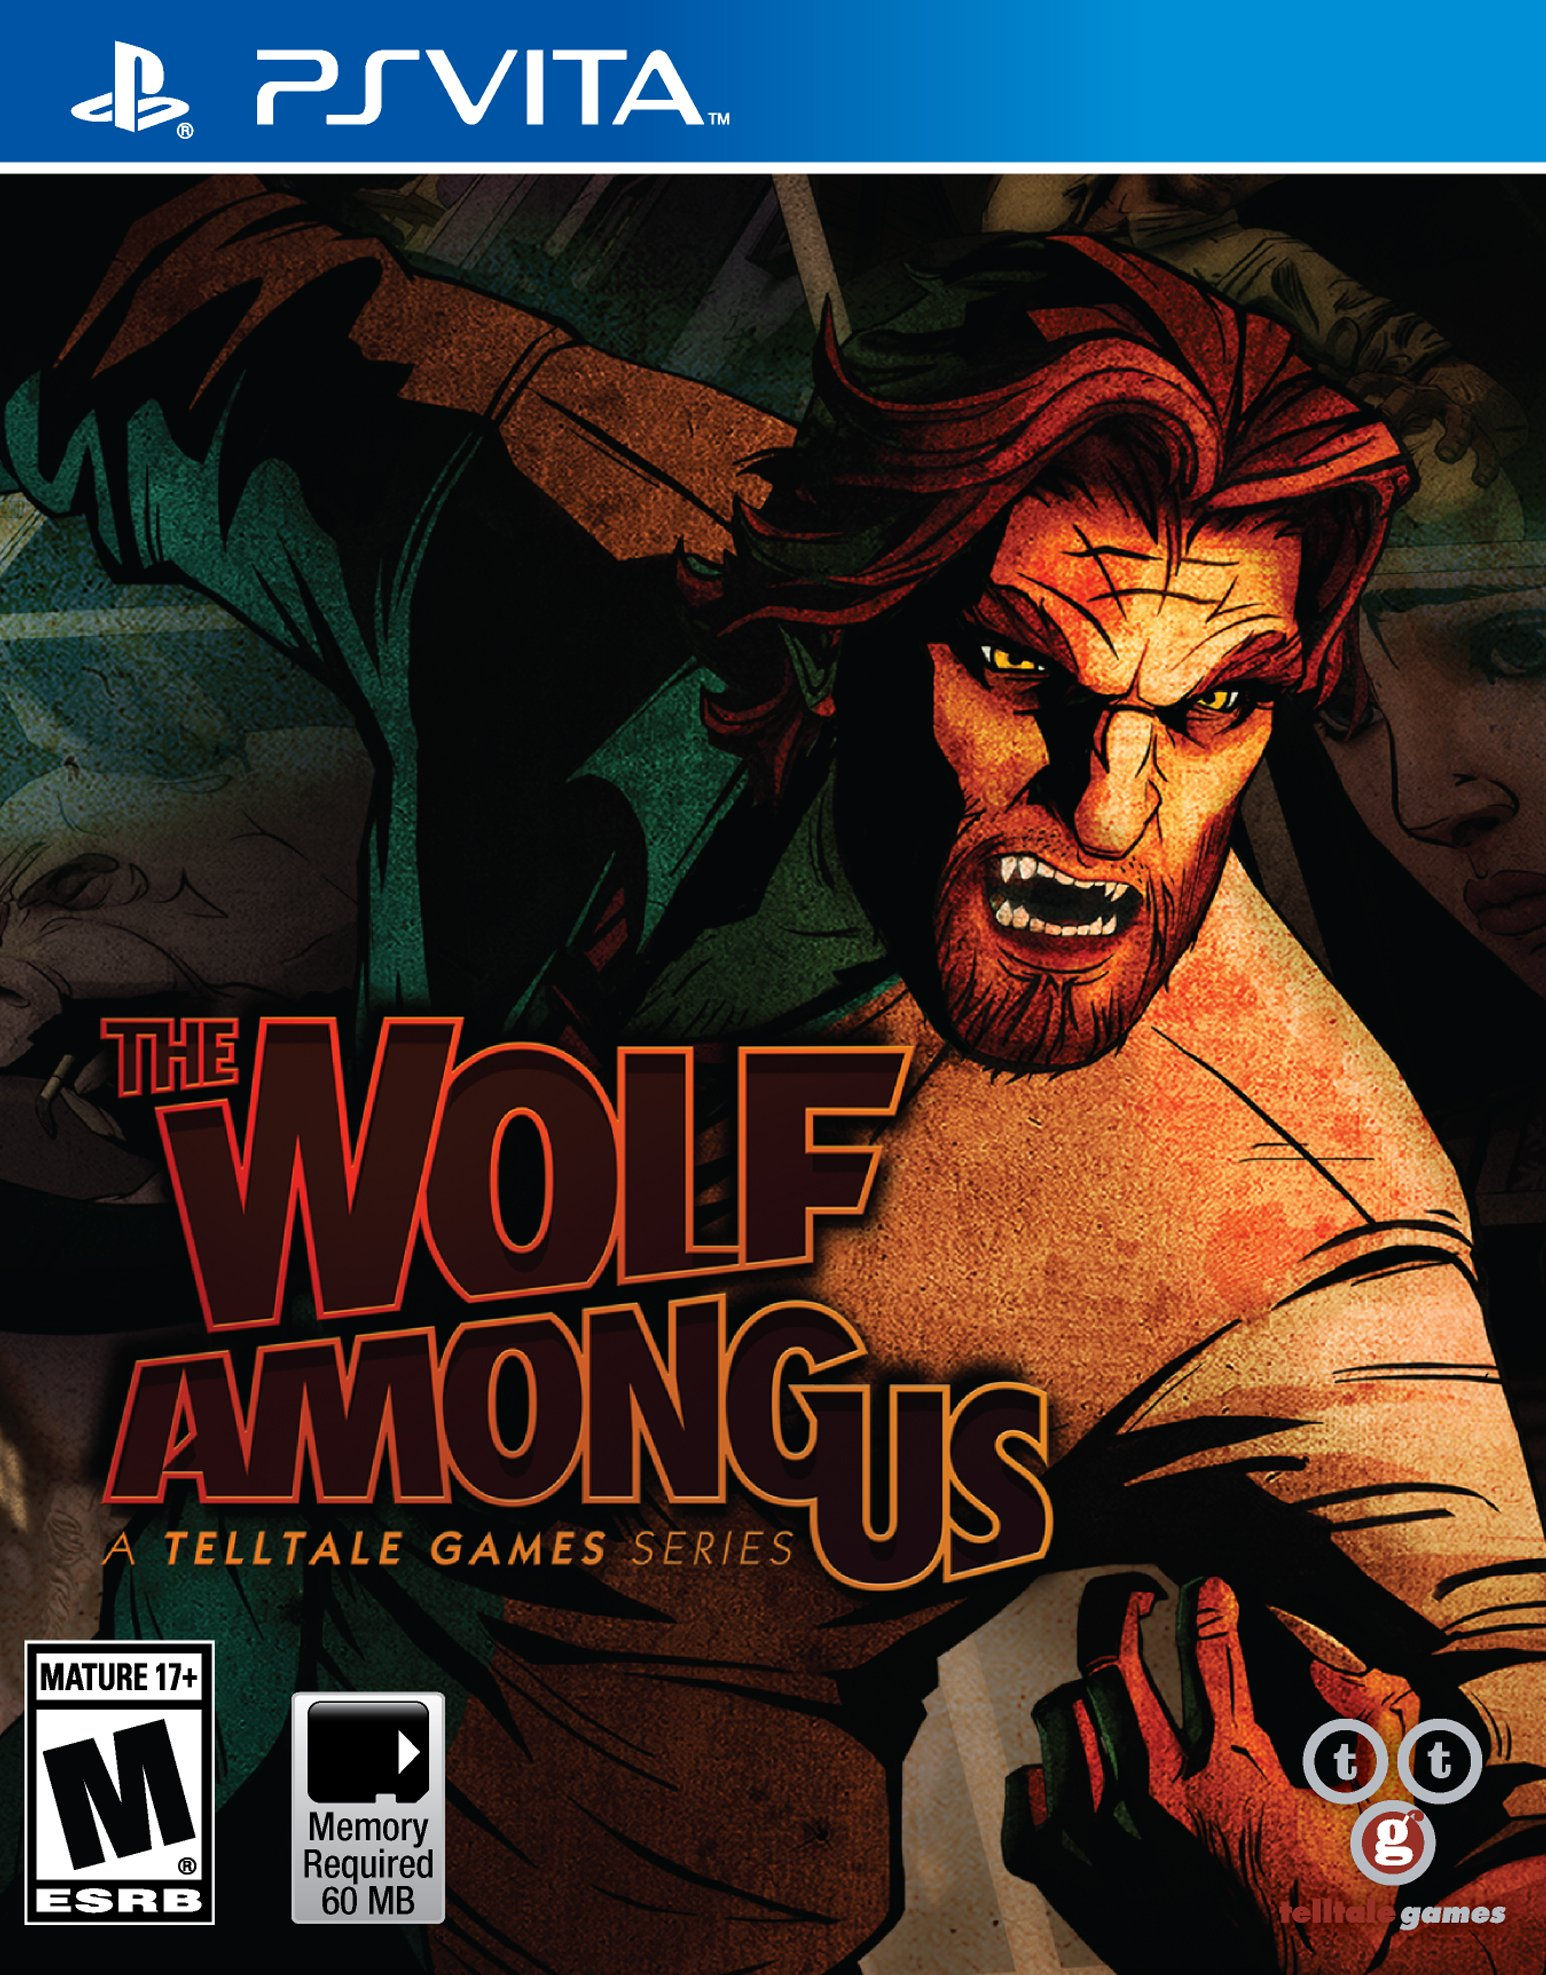 The Wolf Among Us-PlayStation Vita                                                                                                                     By:Telltale Games                                     Eur:37.4 Ден:1899